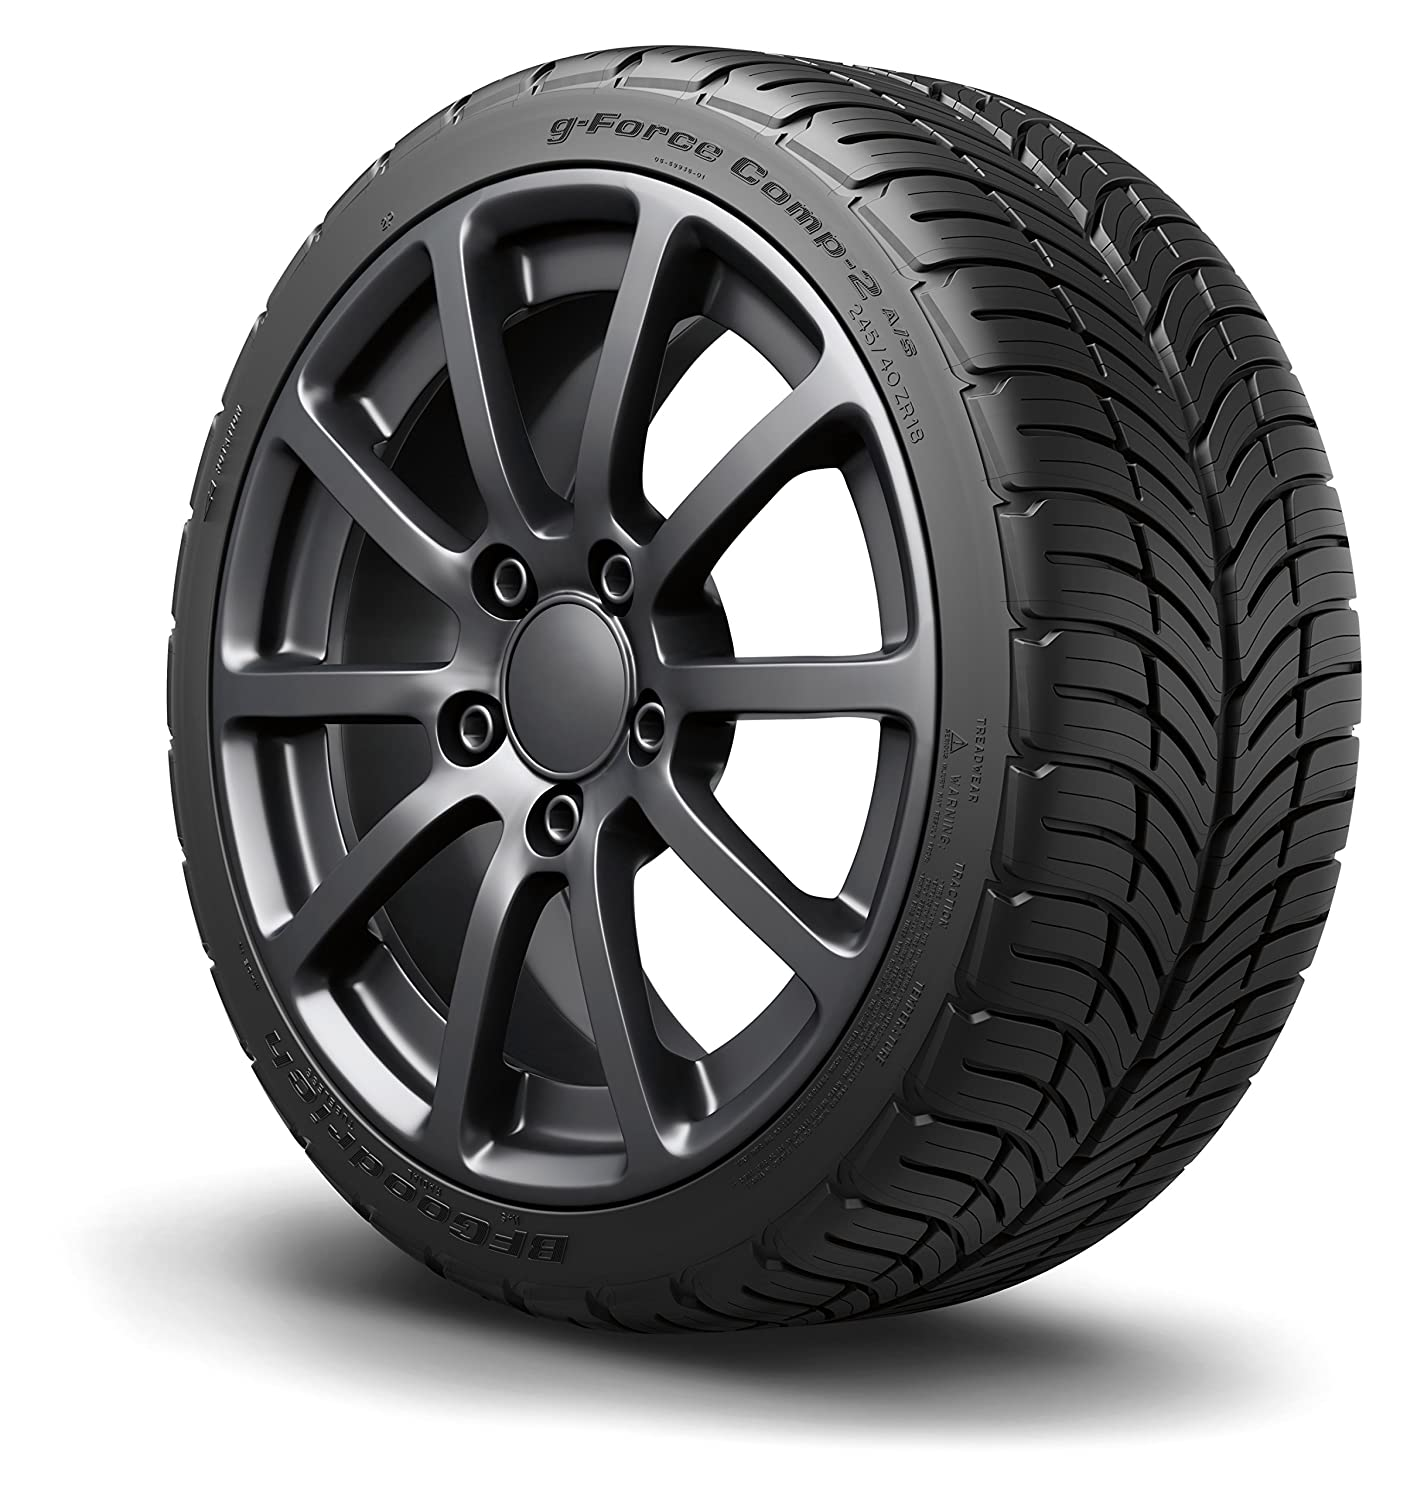 G Force Comp 2 A S >> Bfgoodrich G Force Comp 2 A S All Season Radial Tire 235 55r17 99w